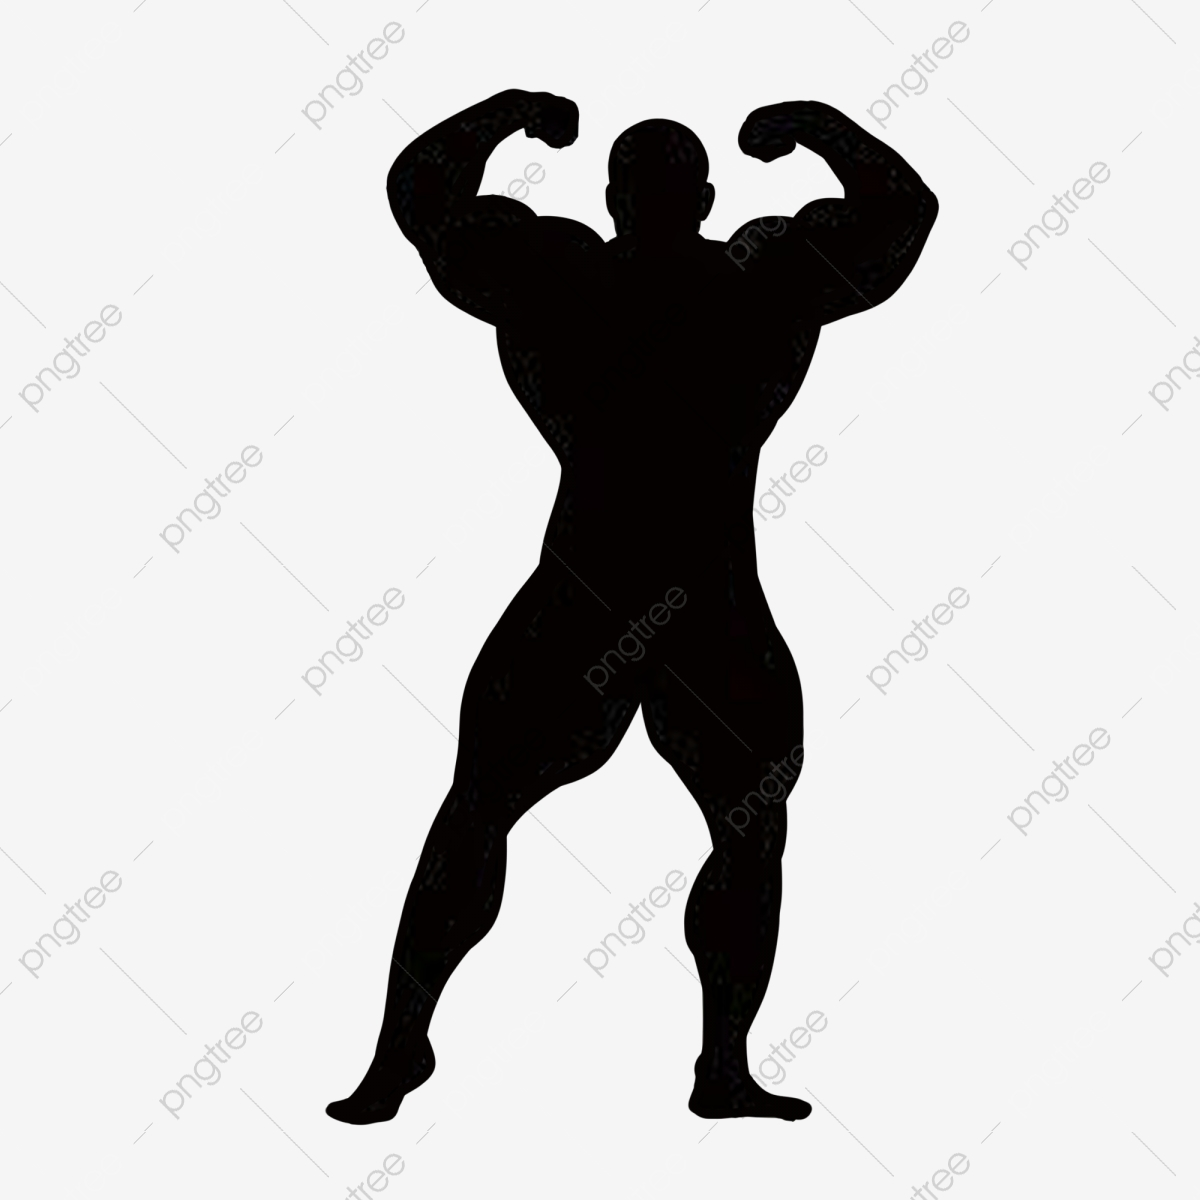 Fitness Male Silhouette Vector Material Bodybuilding Silhouette Men Png Transparent Clipart Image And Psd File For Free Download Download transparent male silhouette png for free on pngkey.com. https pngtree com freepng fitness male silhouette vector material 4360296 html